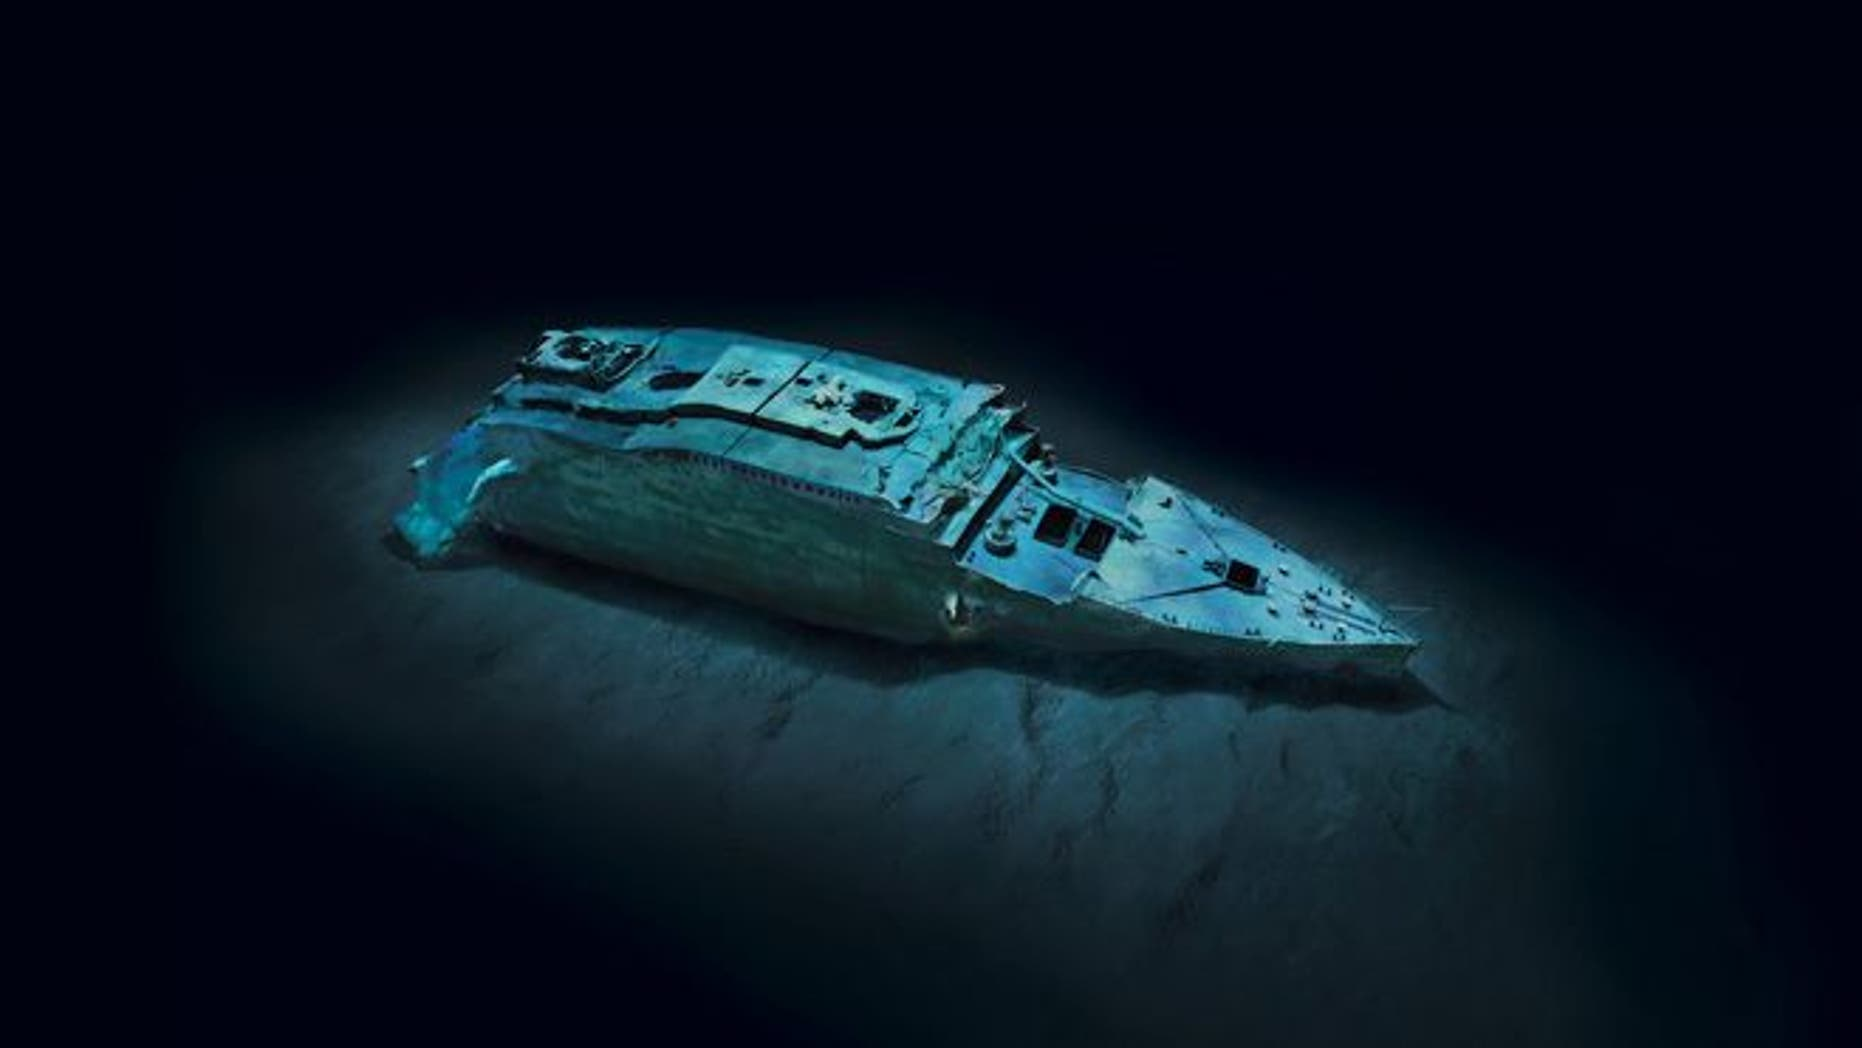 Etheral views of Titanic's bow (modeled) offer a comprehensiveness of detail never seen before.